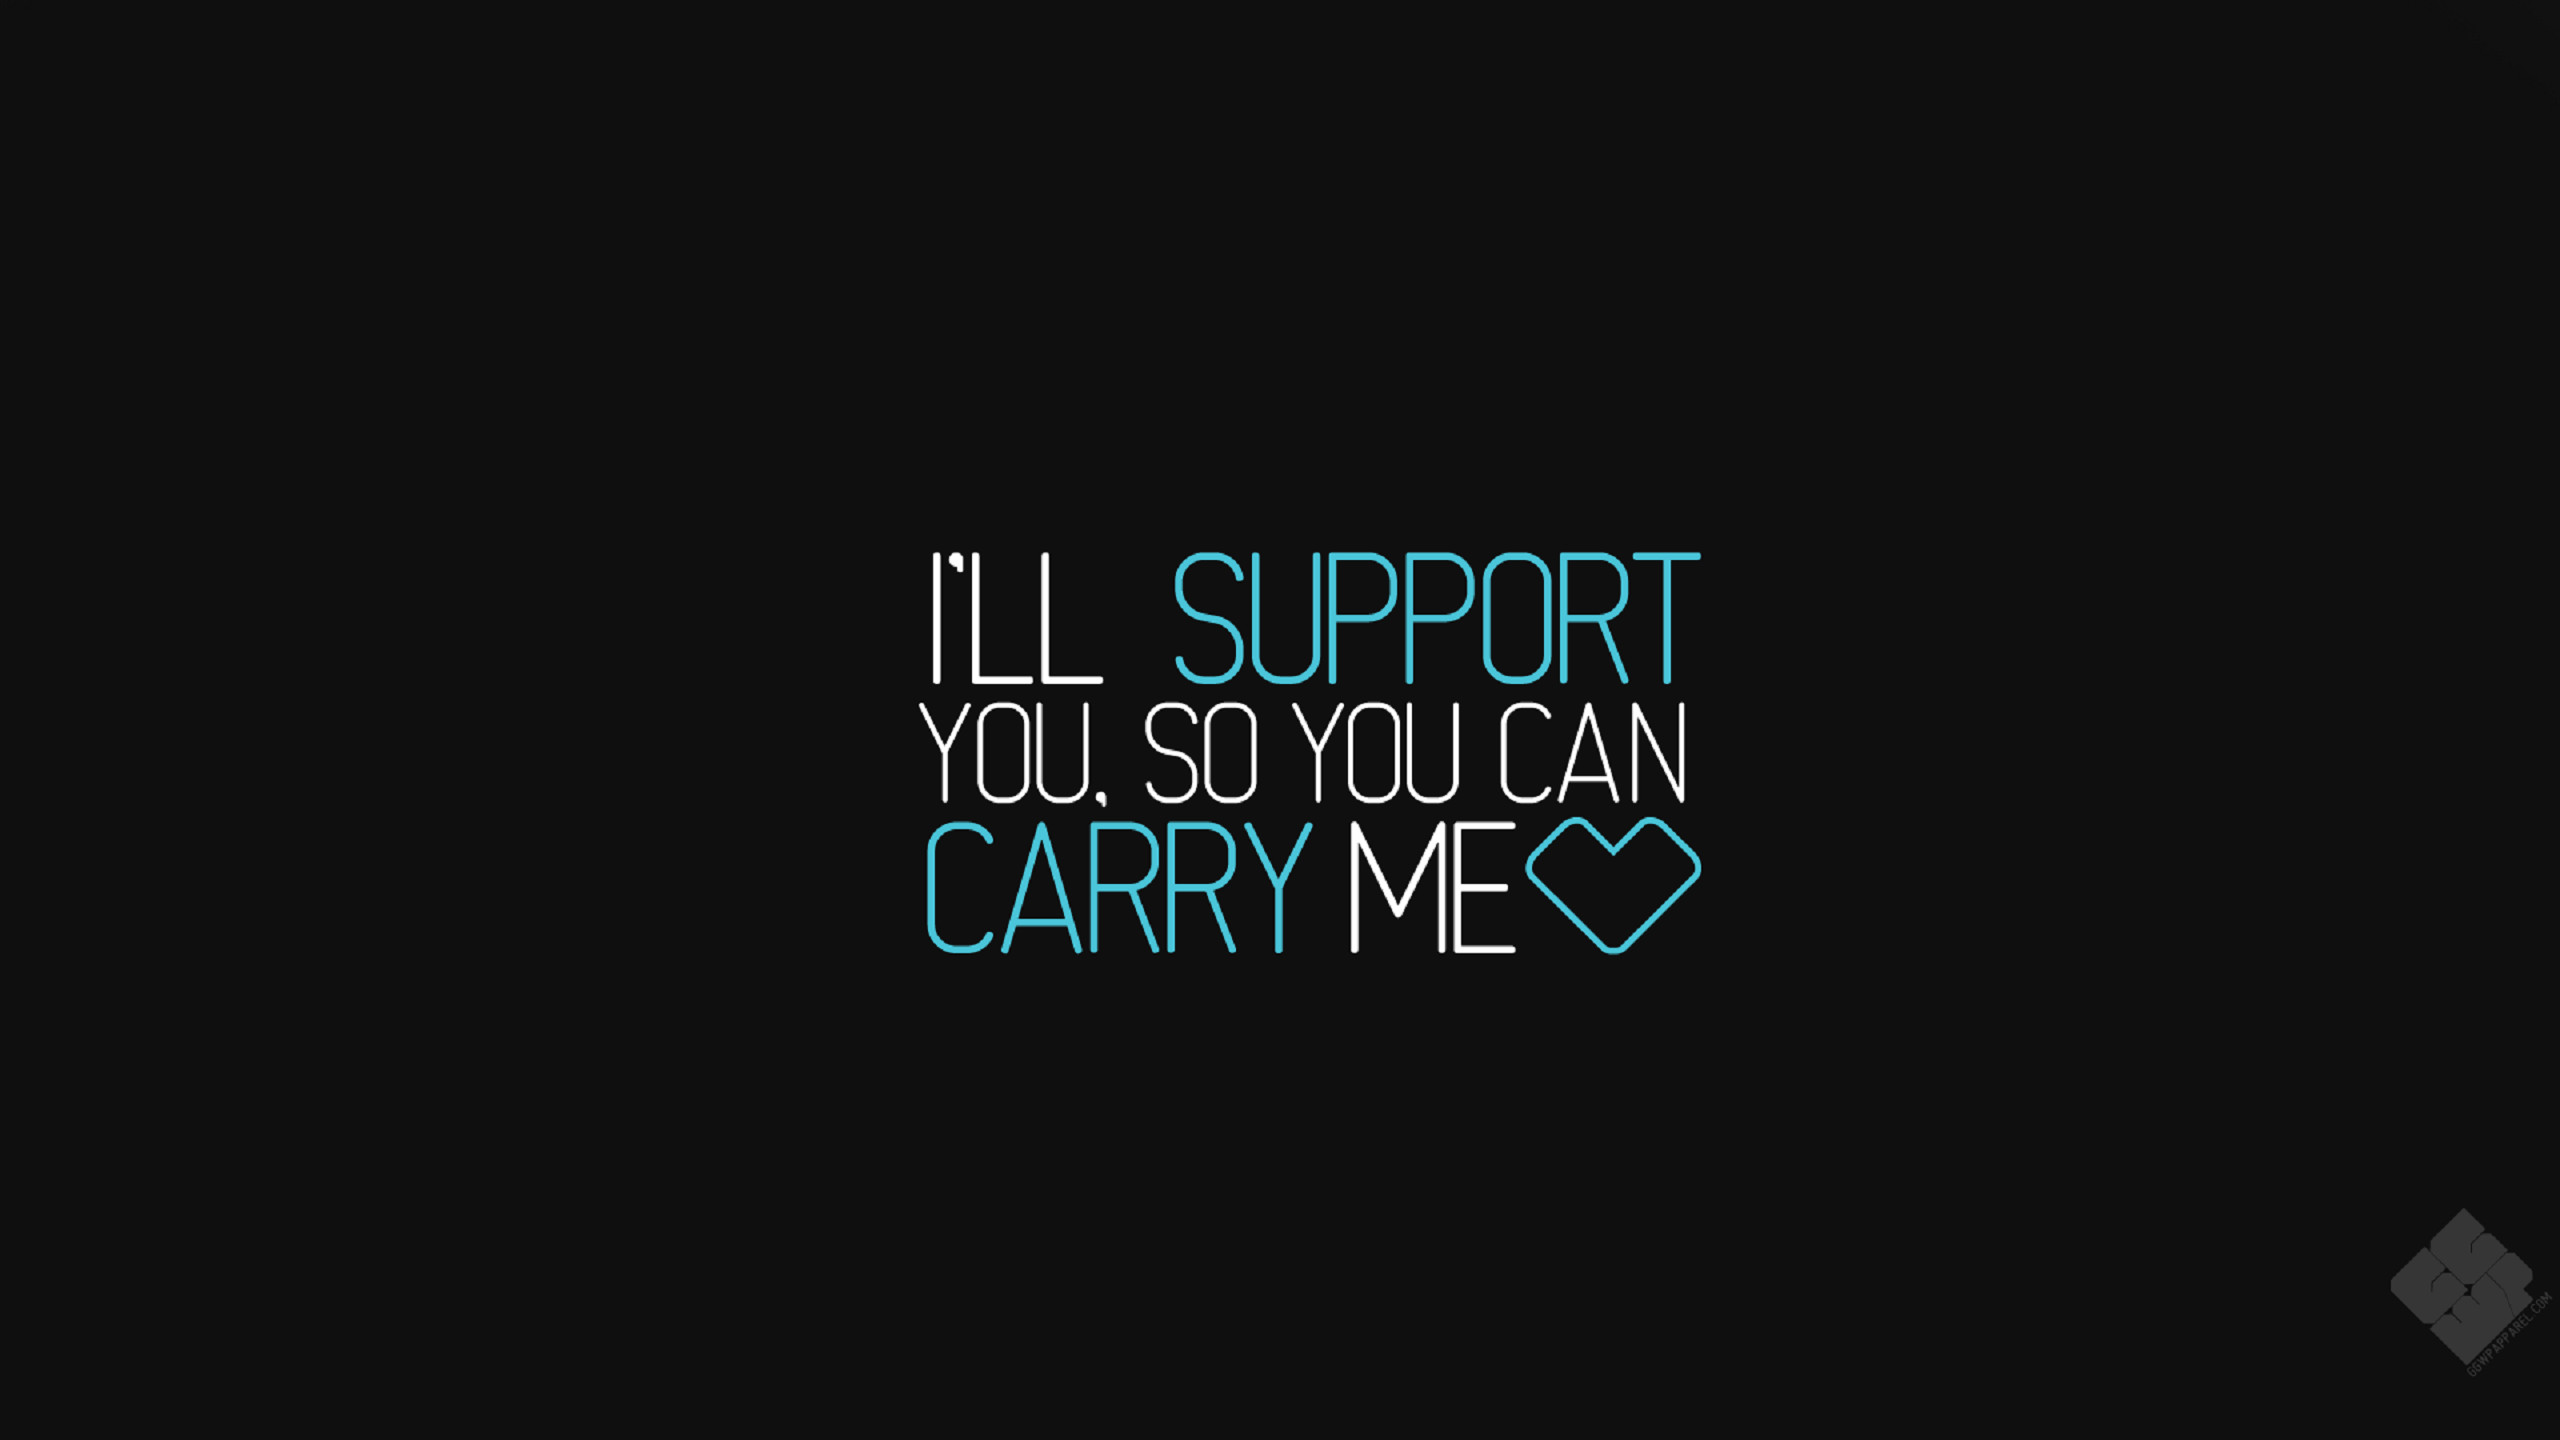 LoL Support Wallpaper (86+ images)